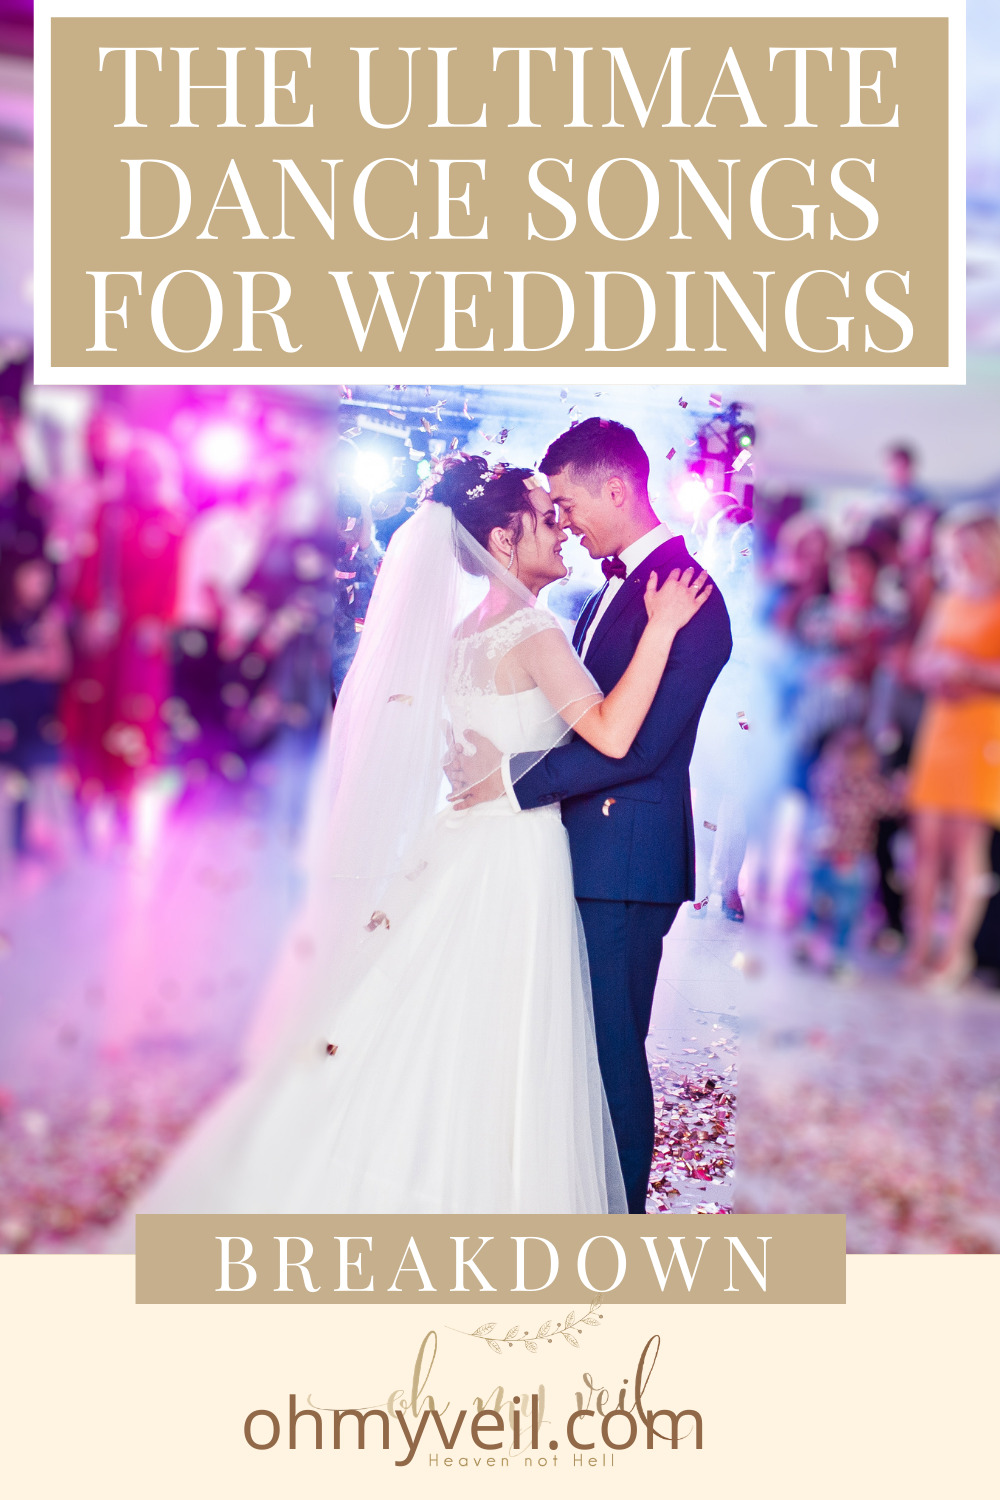 Ohmyveil.com is the best place on the internet for anyone planning a wedding. Make sure your guests have a great time. These tunes absolutely HAVE to be on your wedding dance playlist!